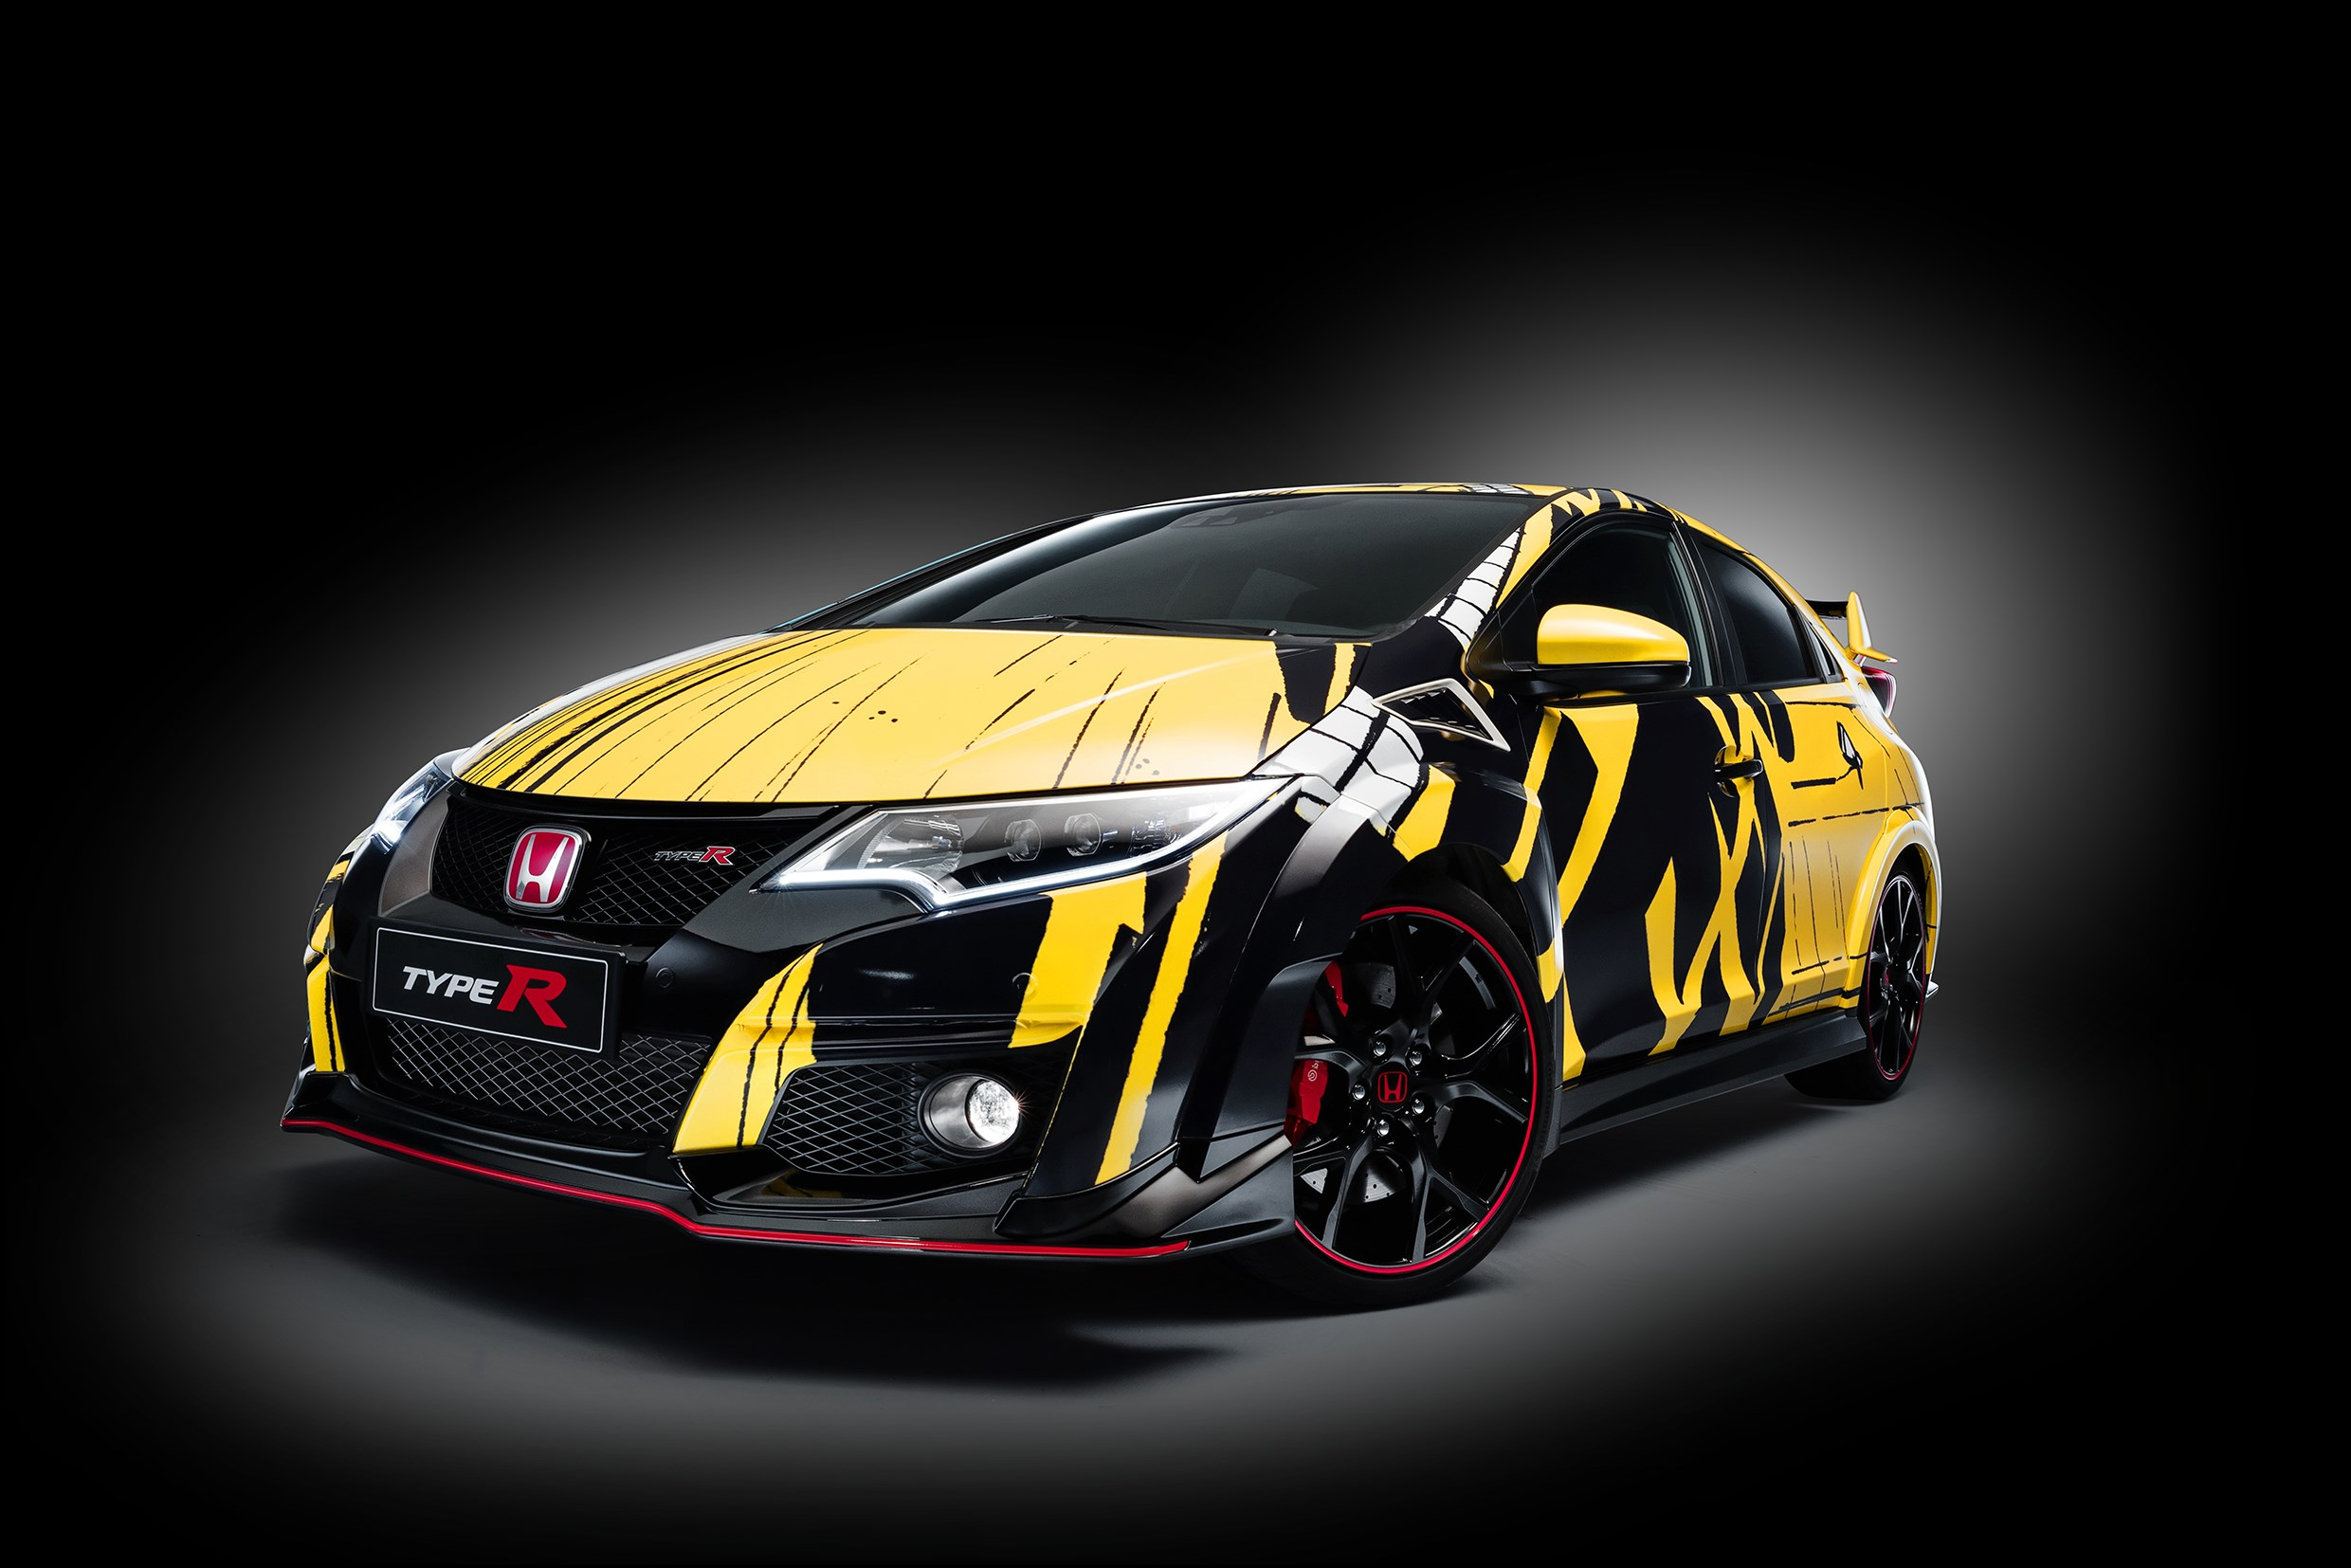 Honda Civic WTCC Art Car 2016 - profil avant / front side-face